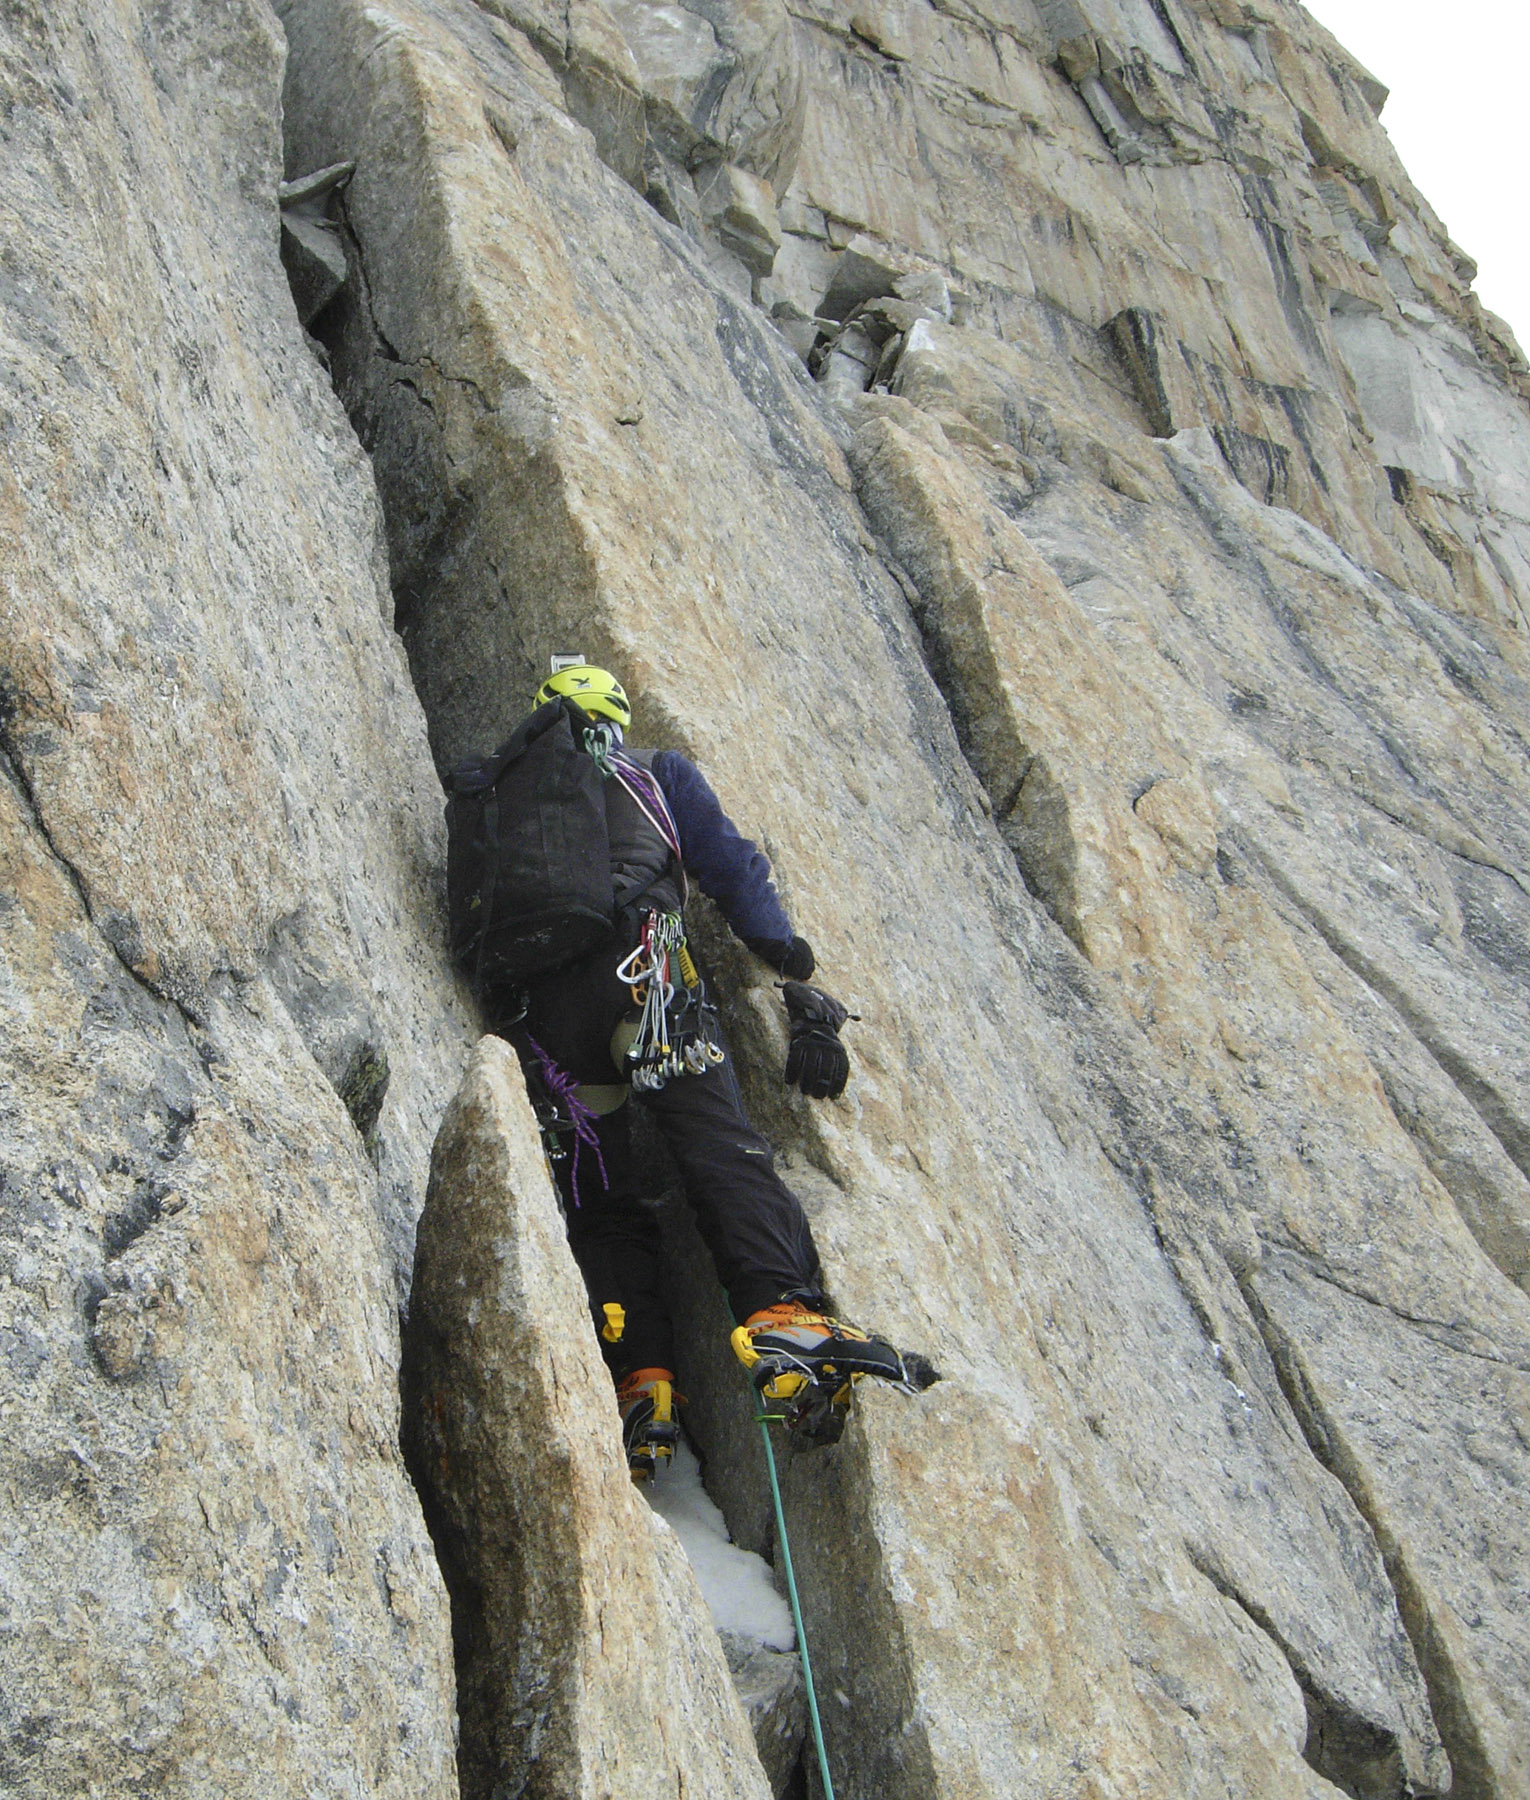 Daniele Nardi starting the UIAA VI crack at 5,900m on Farol West.